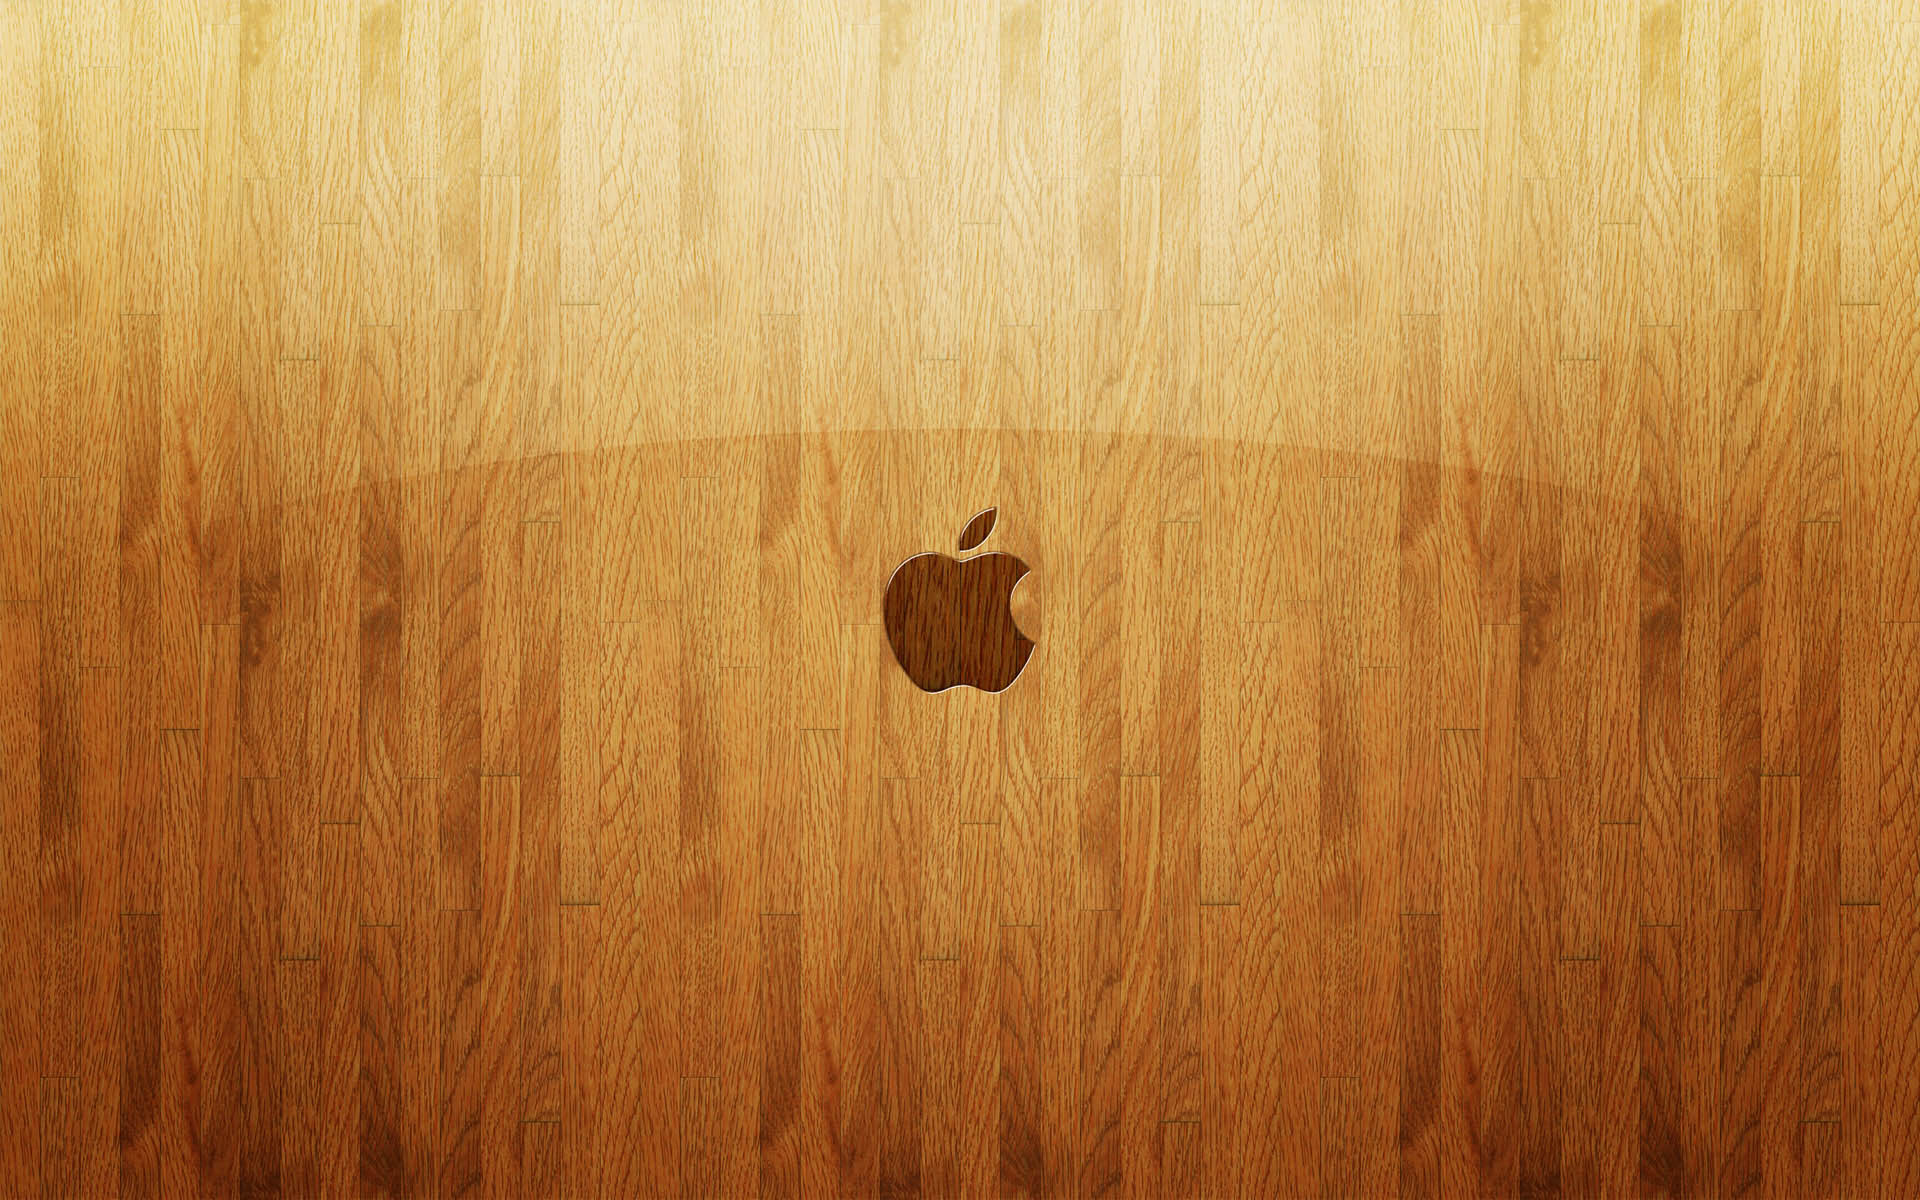 Vista Wood Logo Wallpaper Desktop Pc And Mac Wallpaper Photo Details 1920x1200